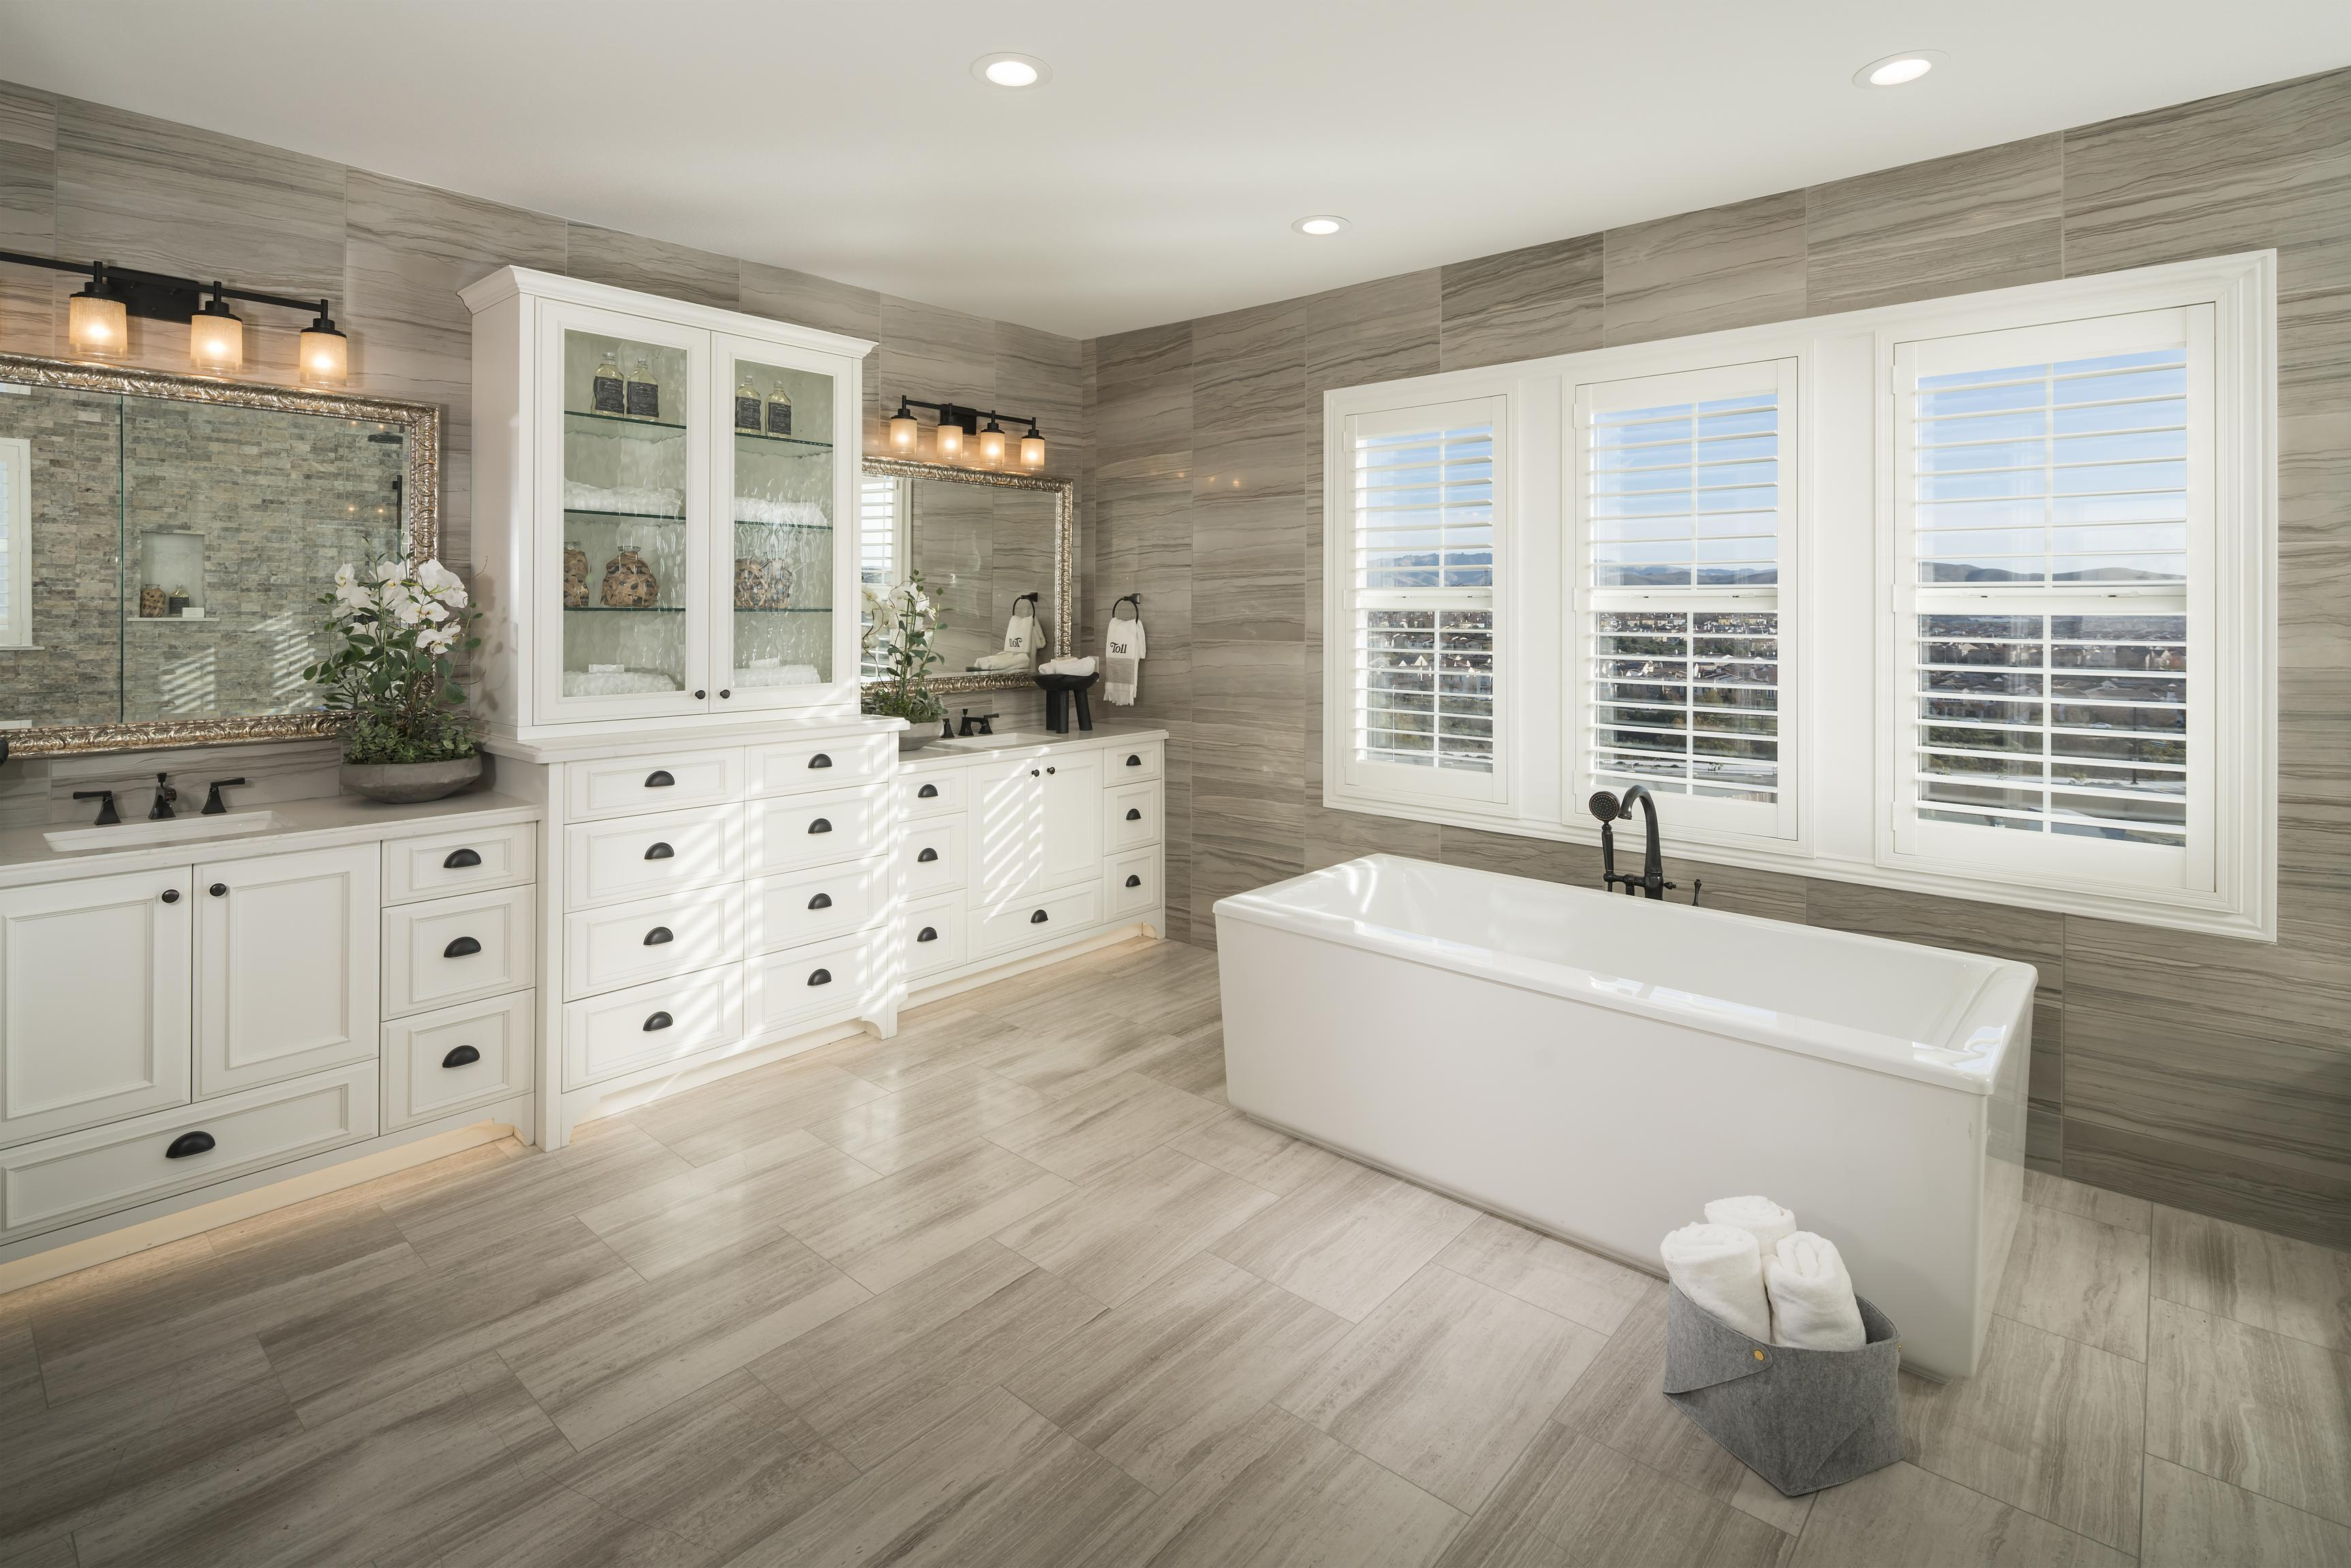 Bathroom with impressive freestanding bathtub, dual vanities, and white cabinetry.